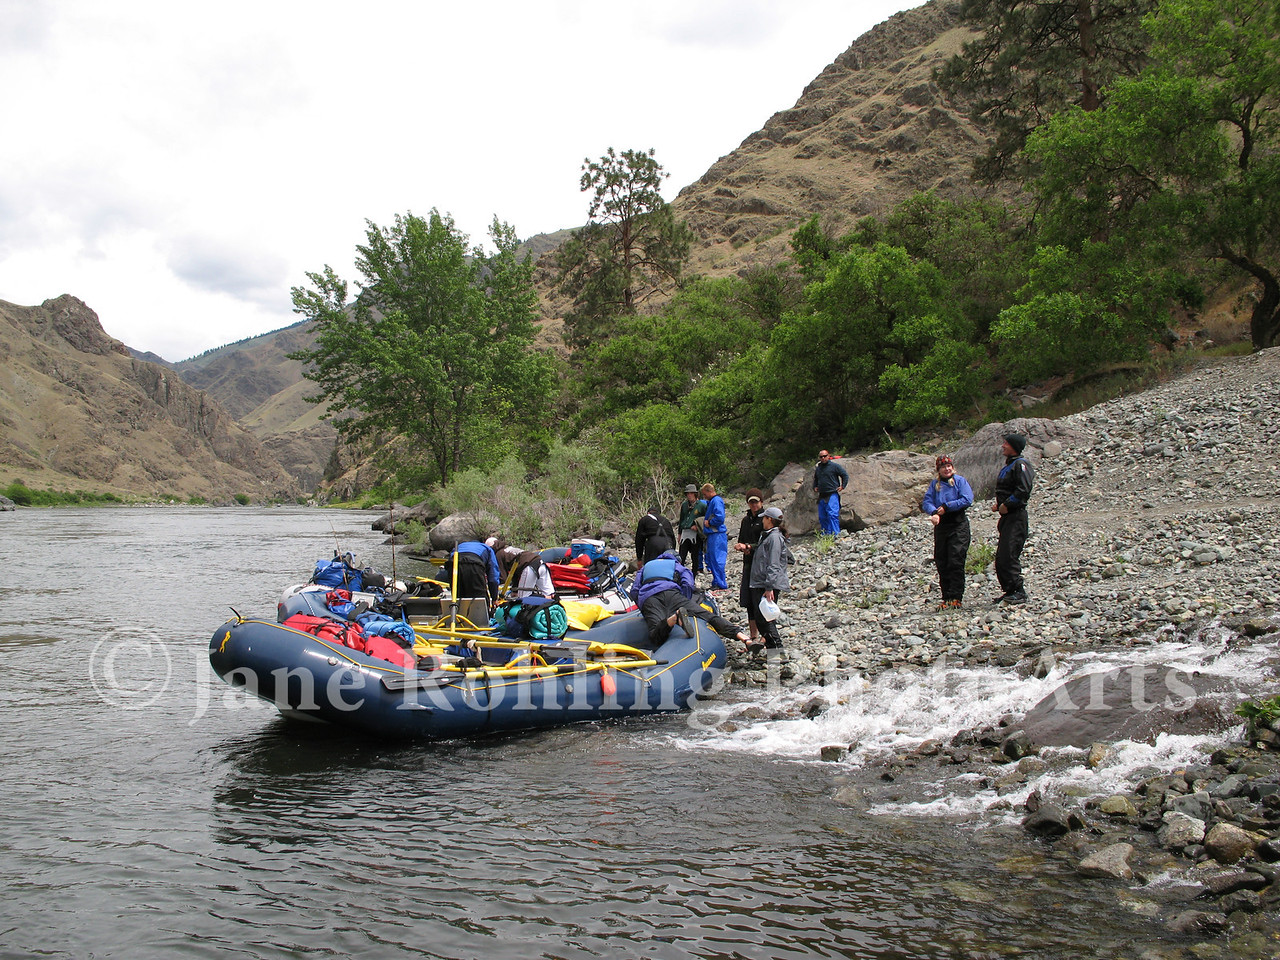 Whitewater rafters at the mouth of Kirkwood Creek in Hells Canyon National Recreation Area, Snake River, Idaho.